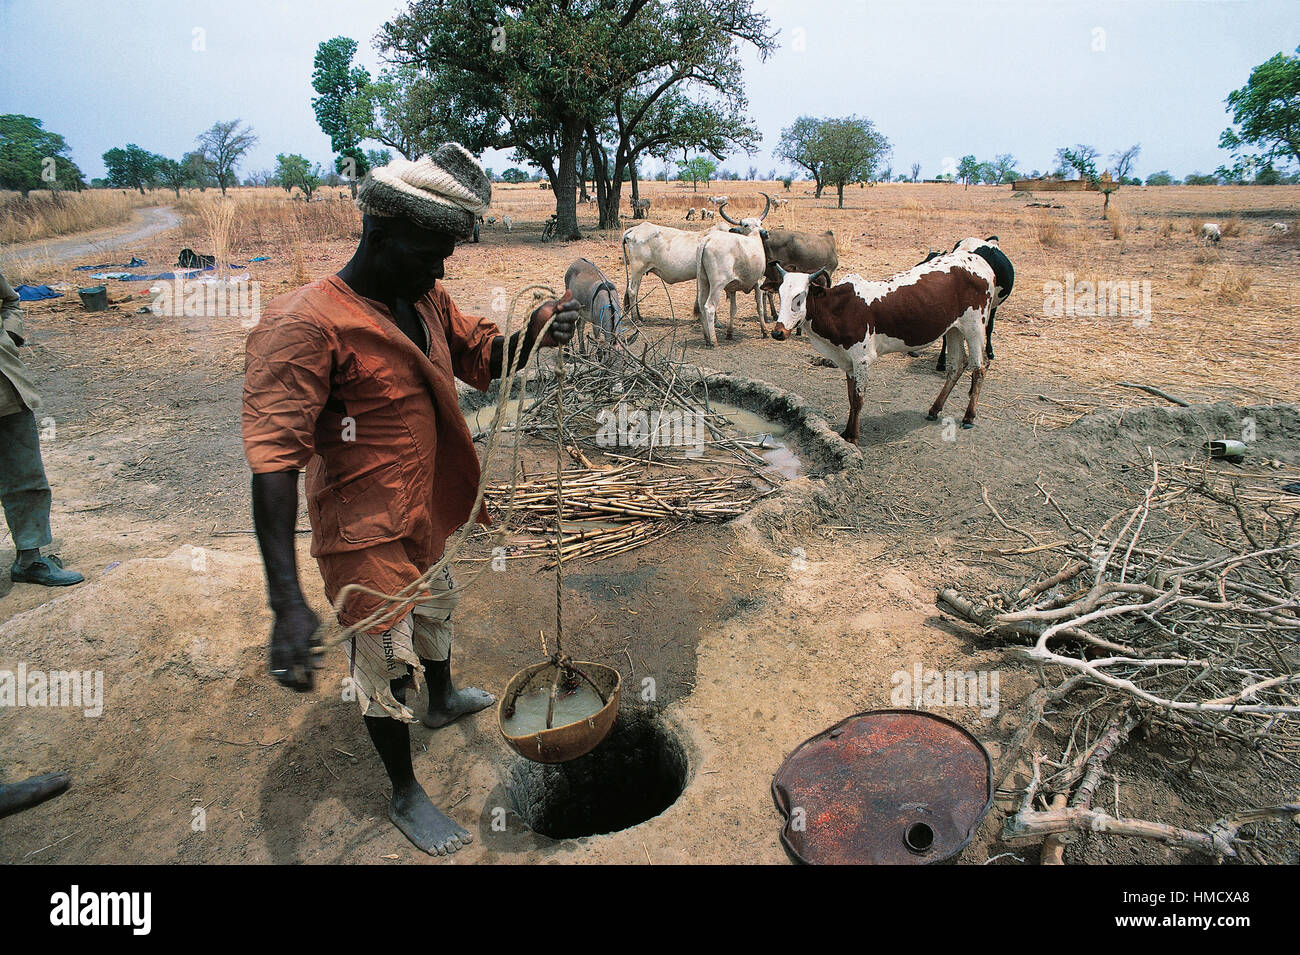 Man drawing water from a well with cattle, Burkina Faso. - Stock Image